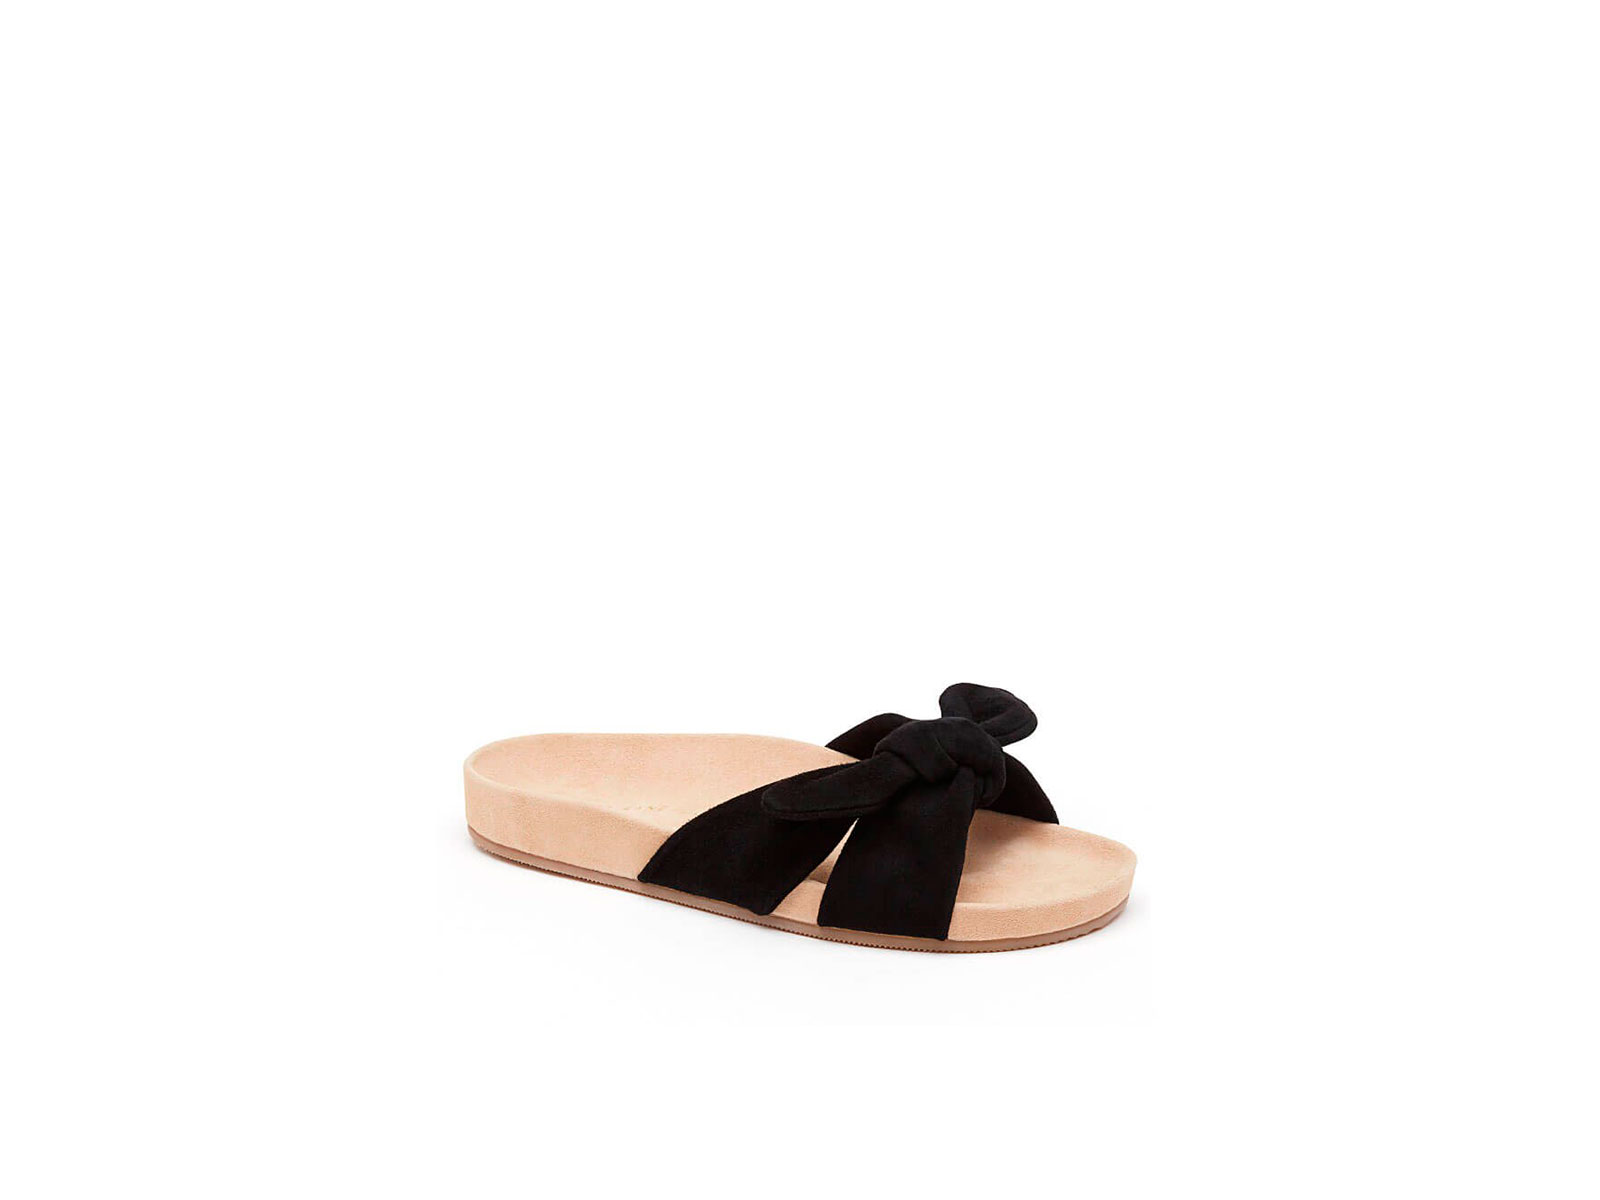 loeffler randall knotted pool slide